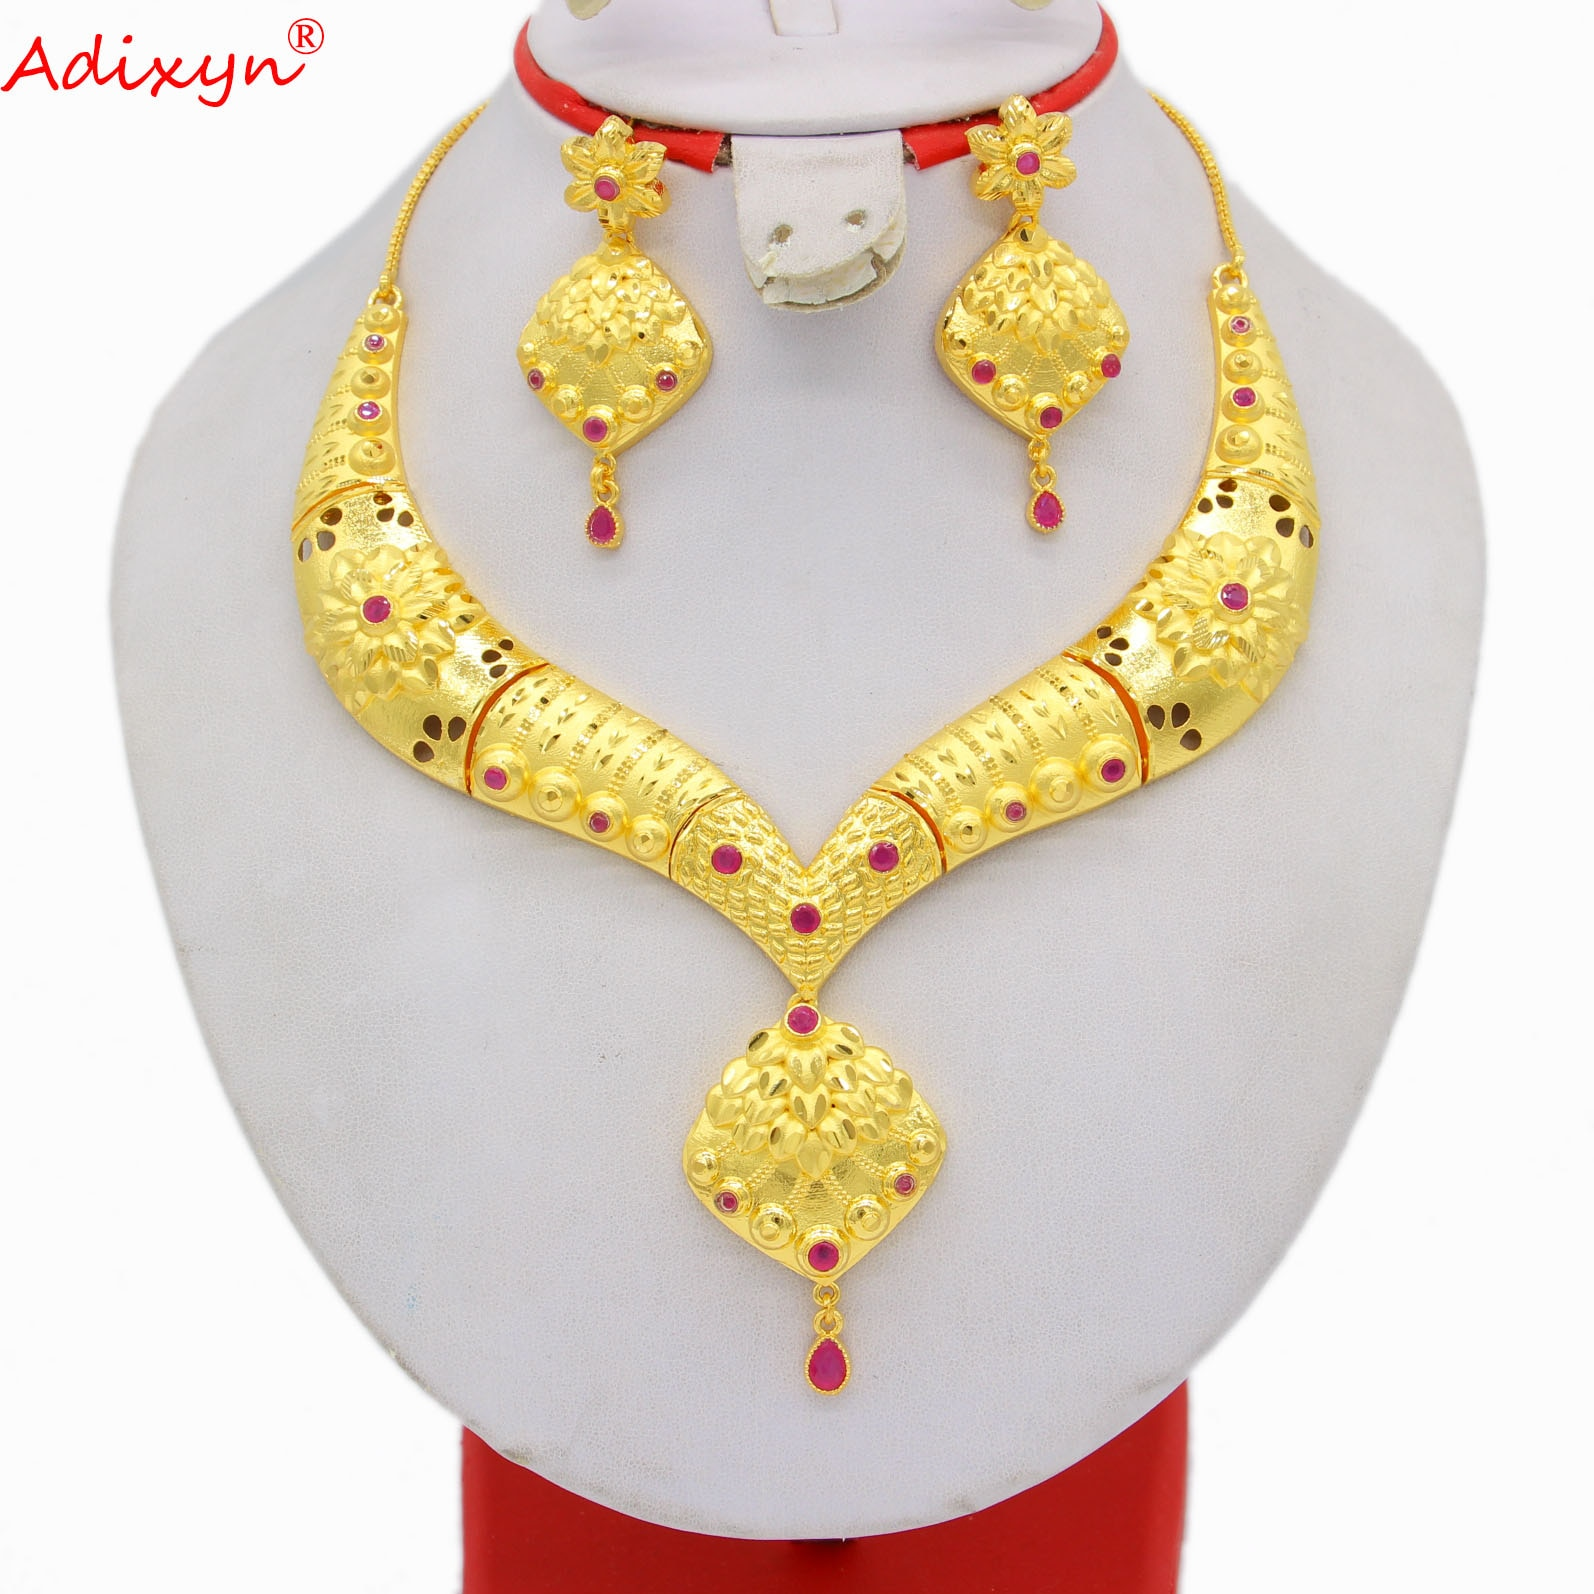 Adixyn 2021 Dubai African Jewelry Set Necklace Earrings for Women 24K Gold Color Indian Ethiopian Wedding Crystal Gifts N04075